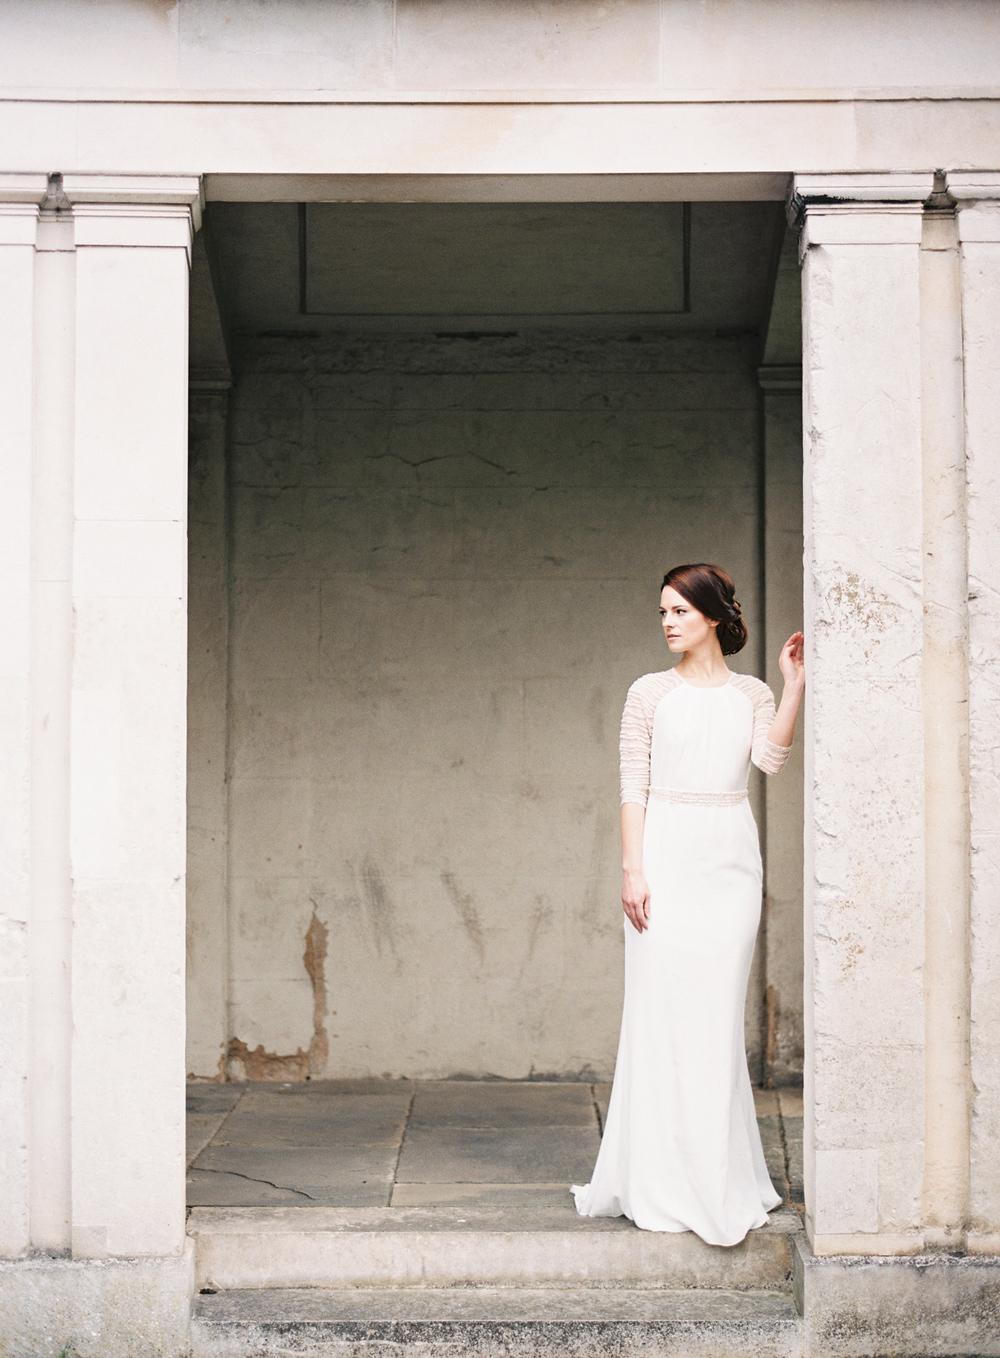 006-london_bridal_inspiration_ashleykelemen.jpg